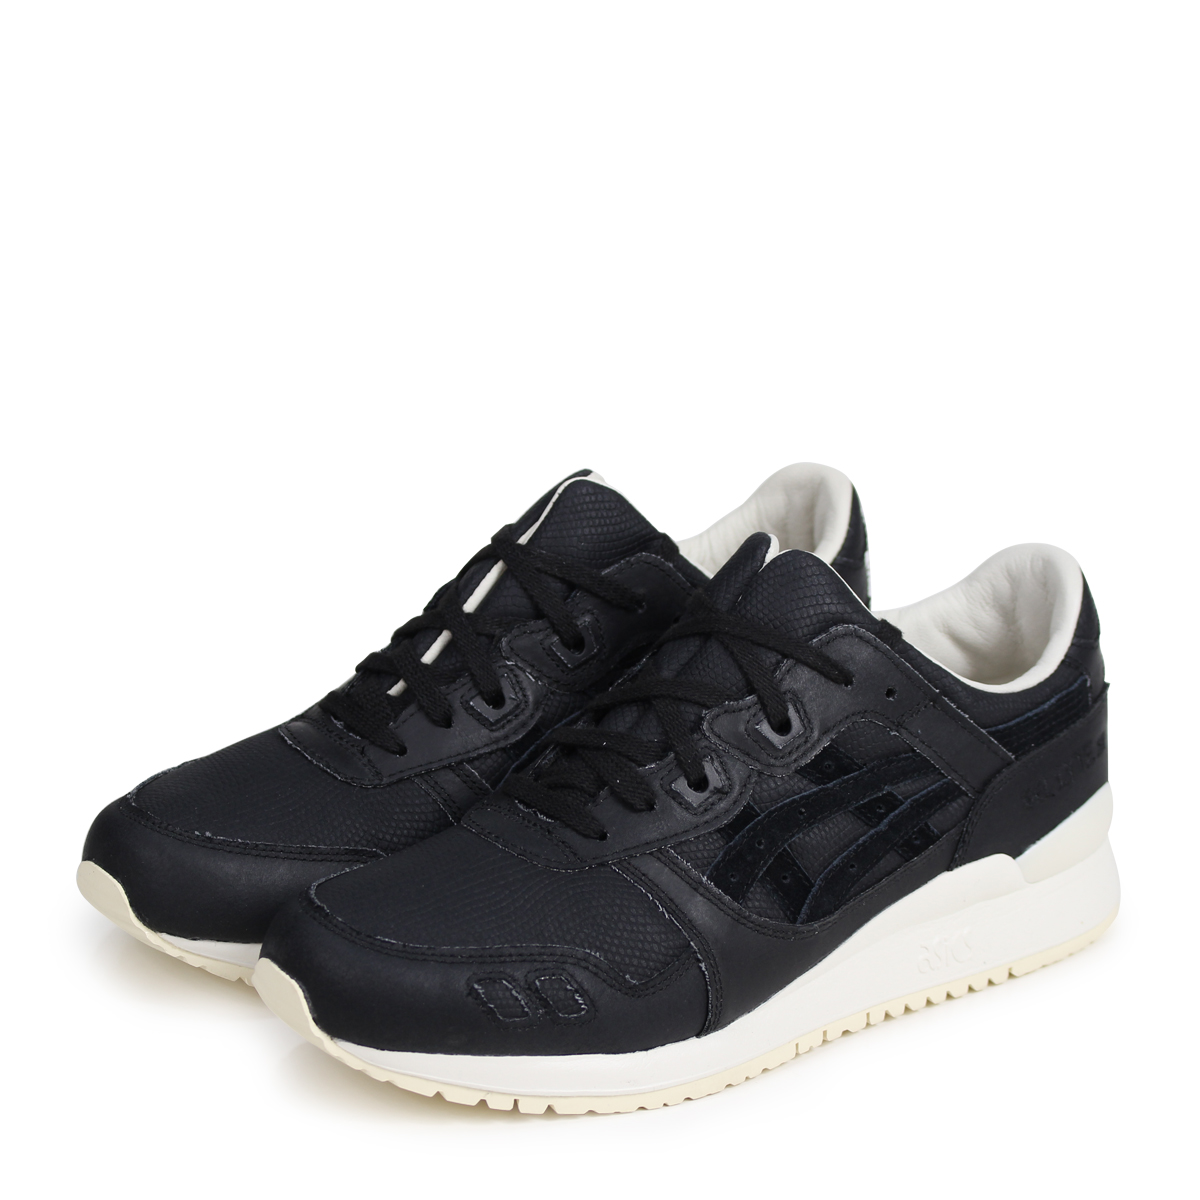 fbd535c7de96 asics Tiger GEL-LYTE III ASICS tiger gel light 3 sneakers H842N-9090 men  black  load planned Shinnyu load in reservation product 3 20 containing    183